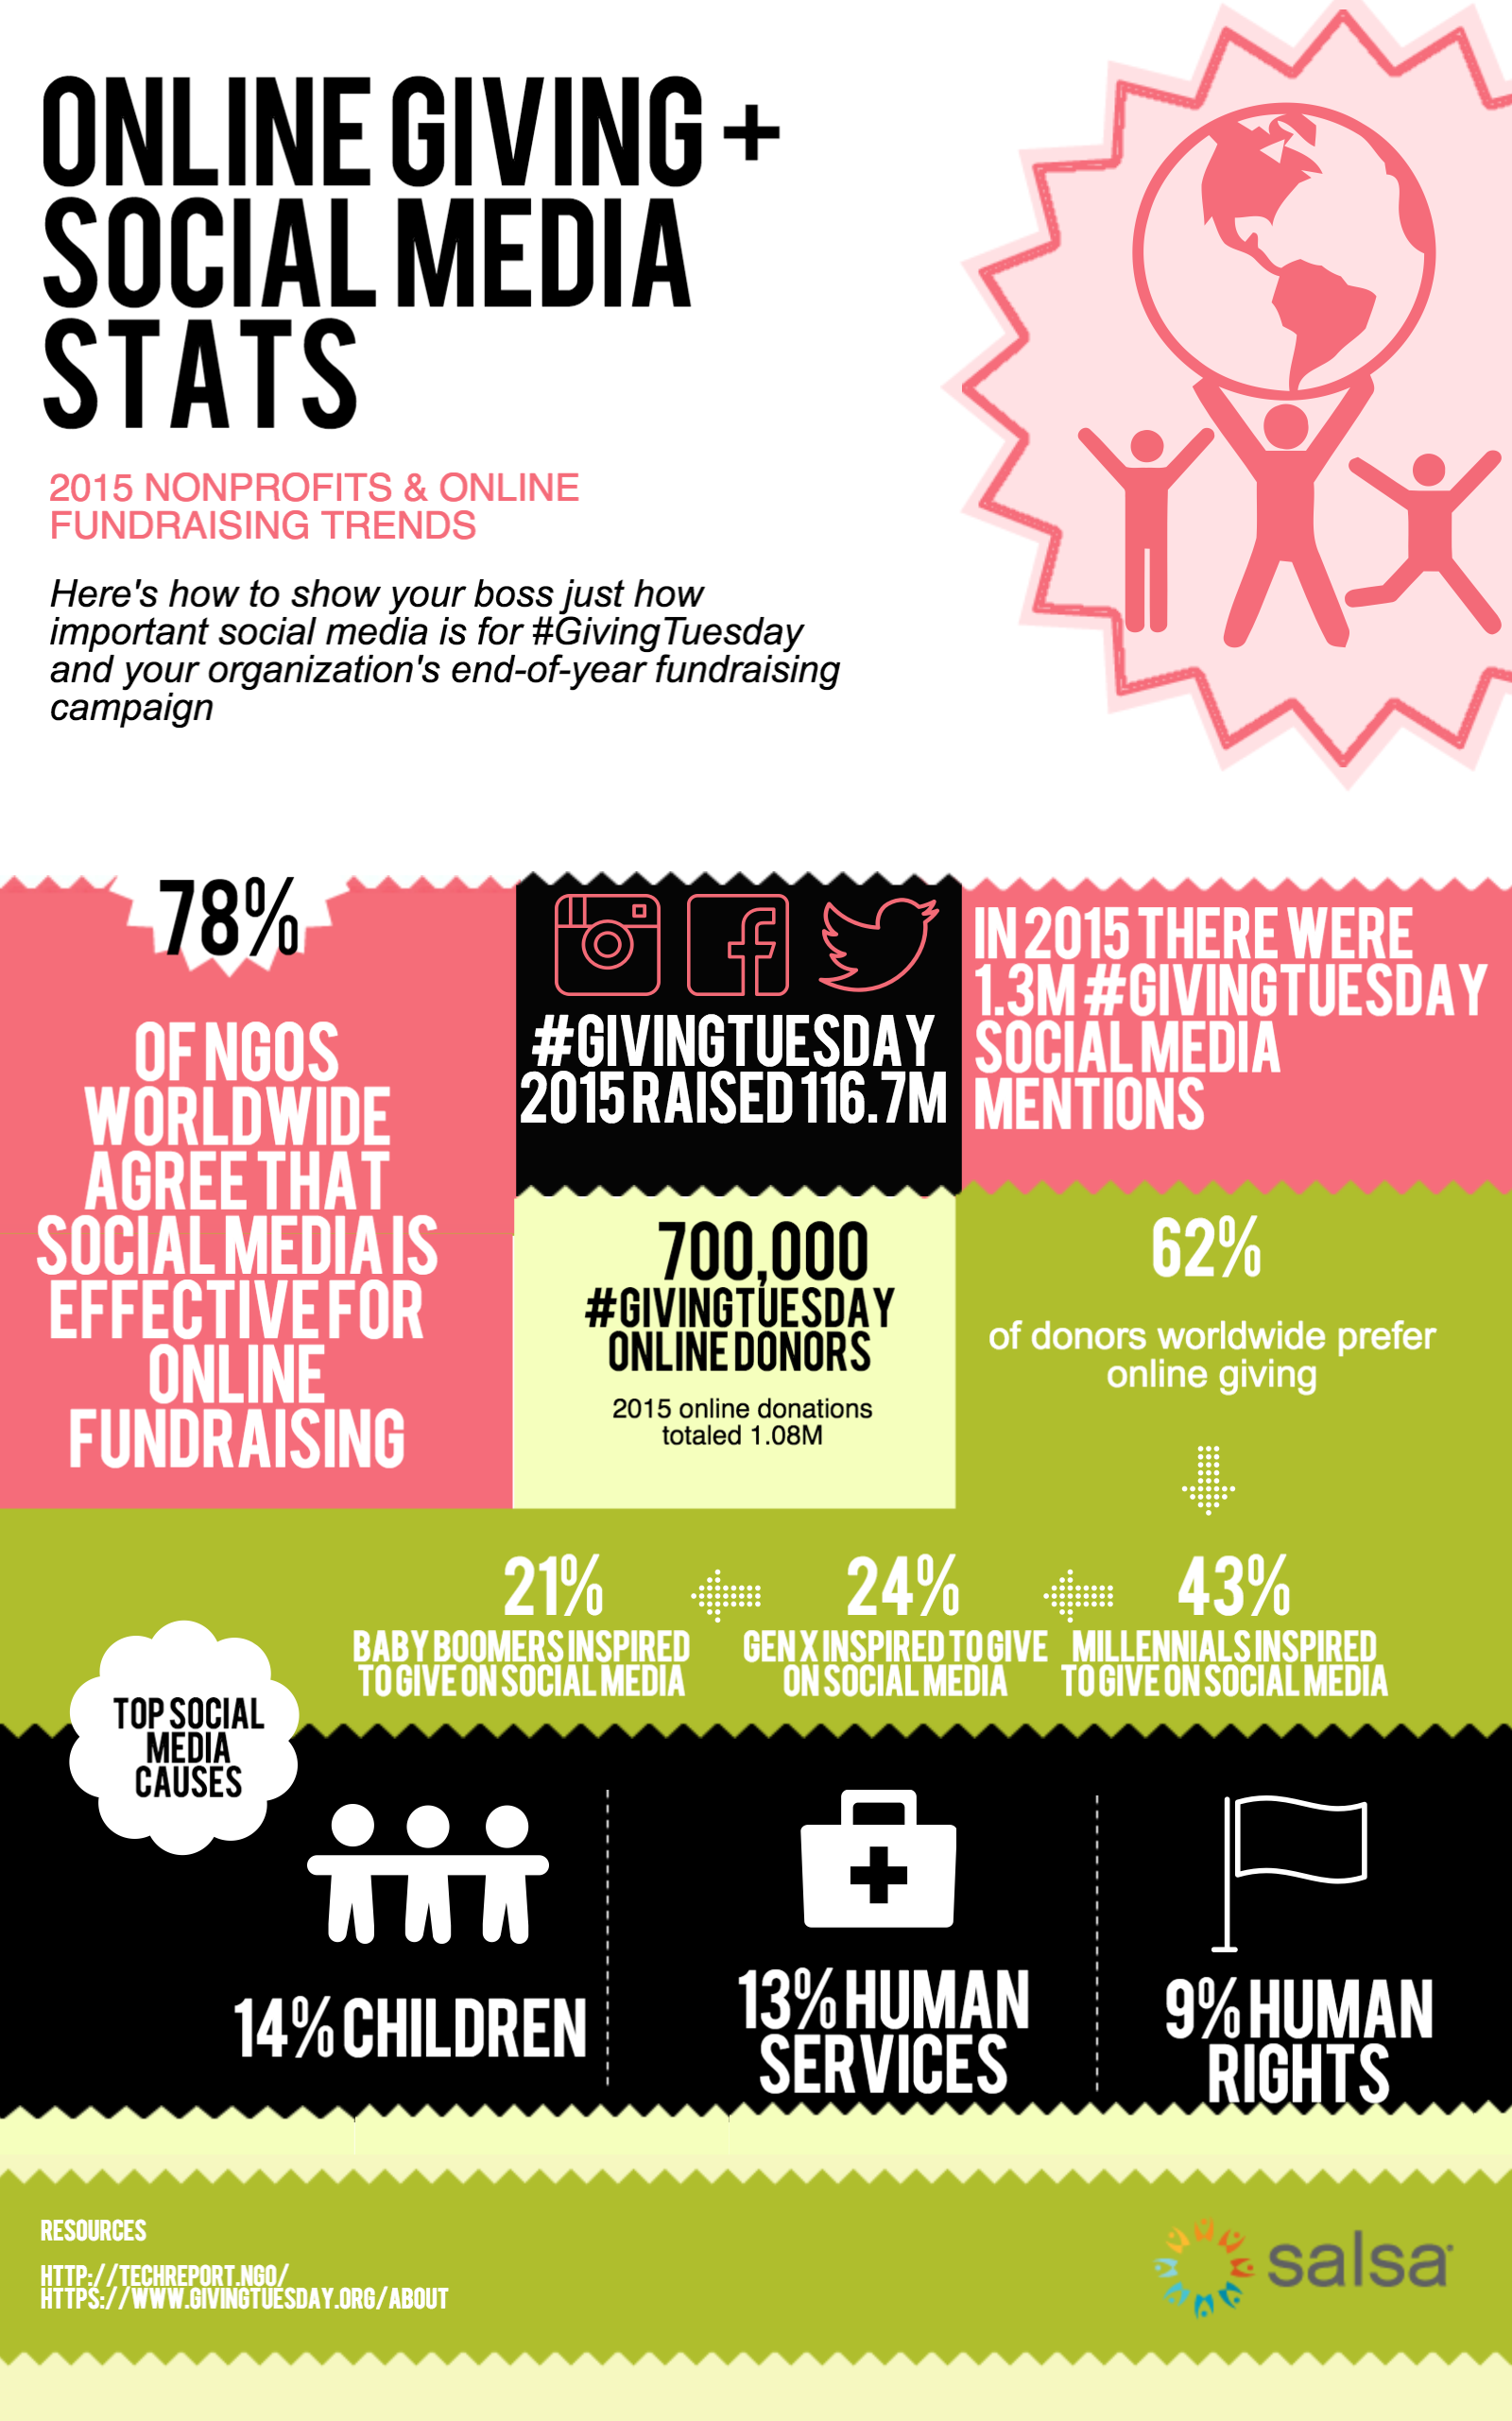 Online Giving + Social Media Stats infographic (essentially showing that social media does help with online giving)